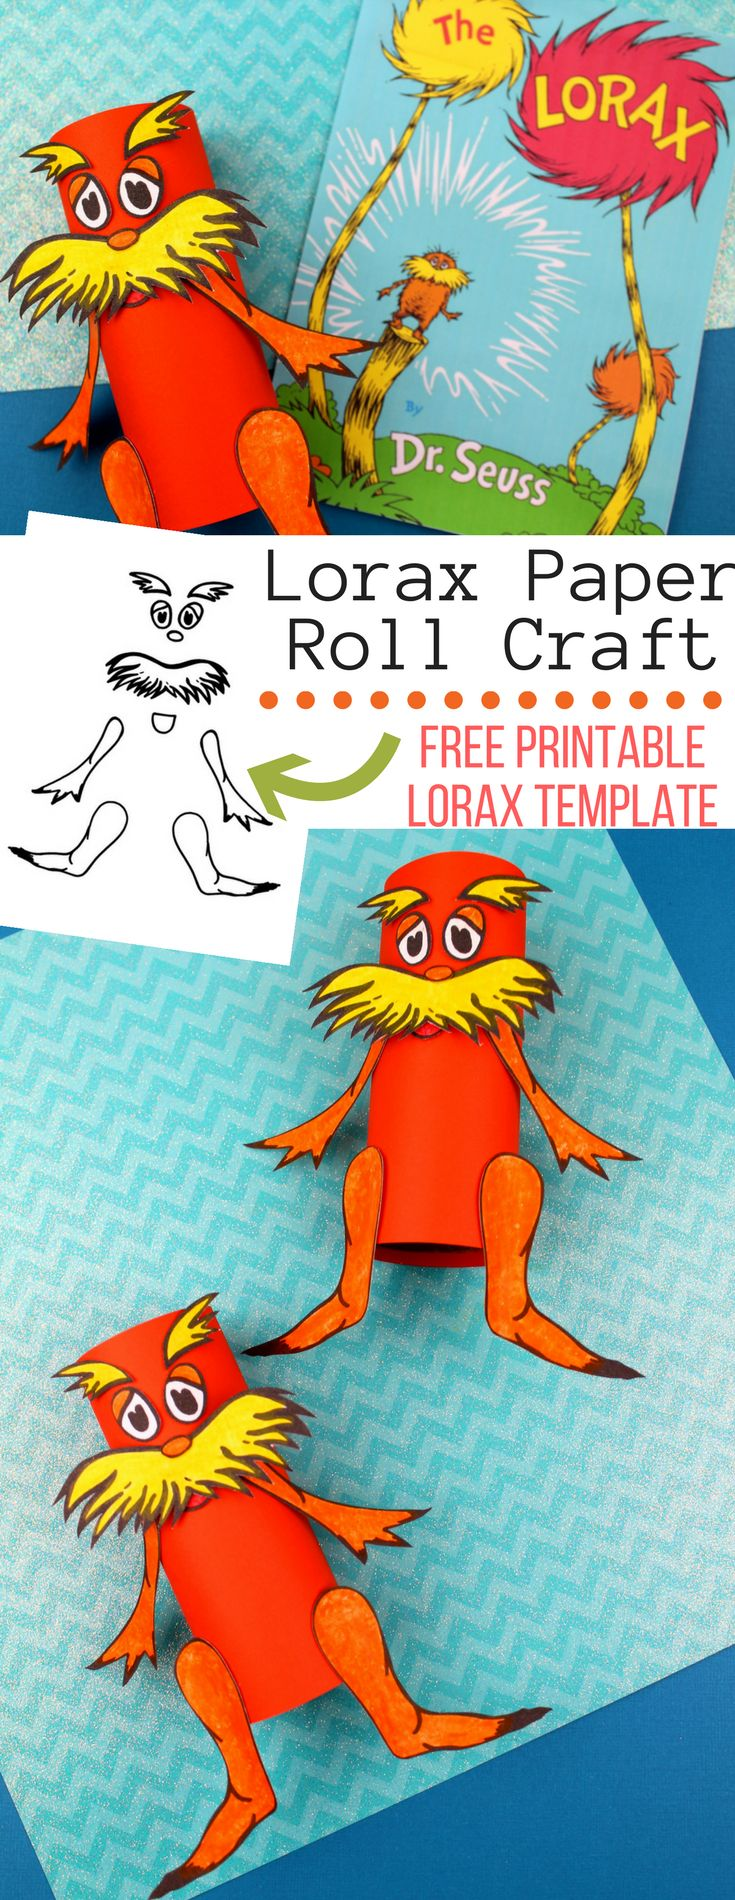 Celebrate Dr. Seuss day with a fun Lorax Dr Seuss activity. This Lorax Paper Roll craft comes with a free Lorax printable template. This is a fun Dr. Seuss activity for kids. #craftpaper